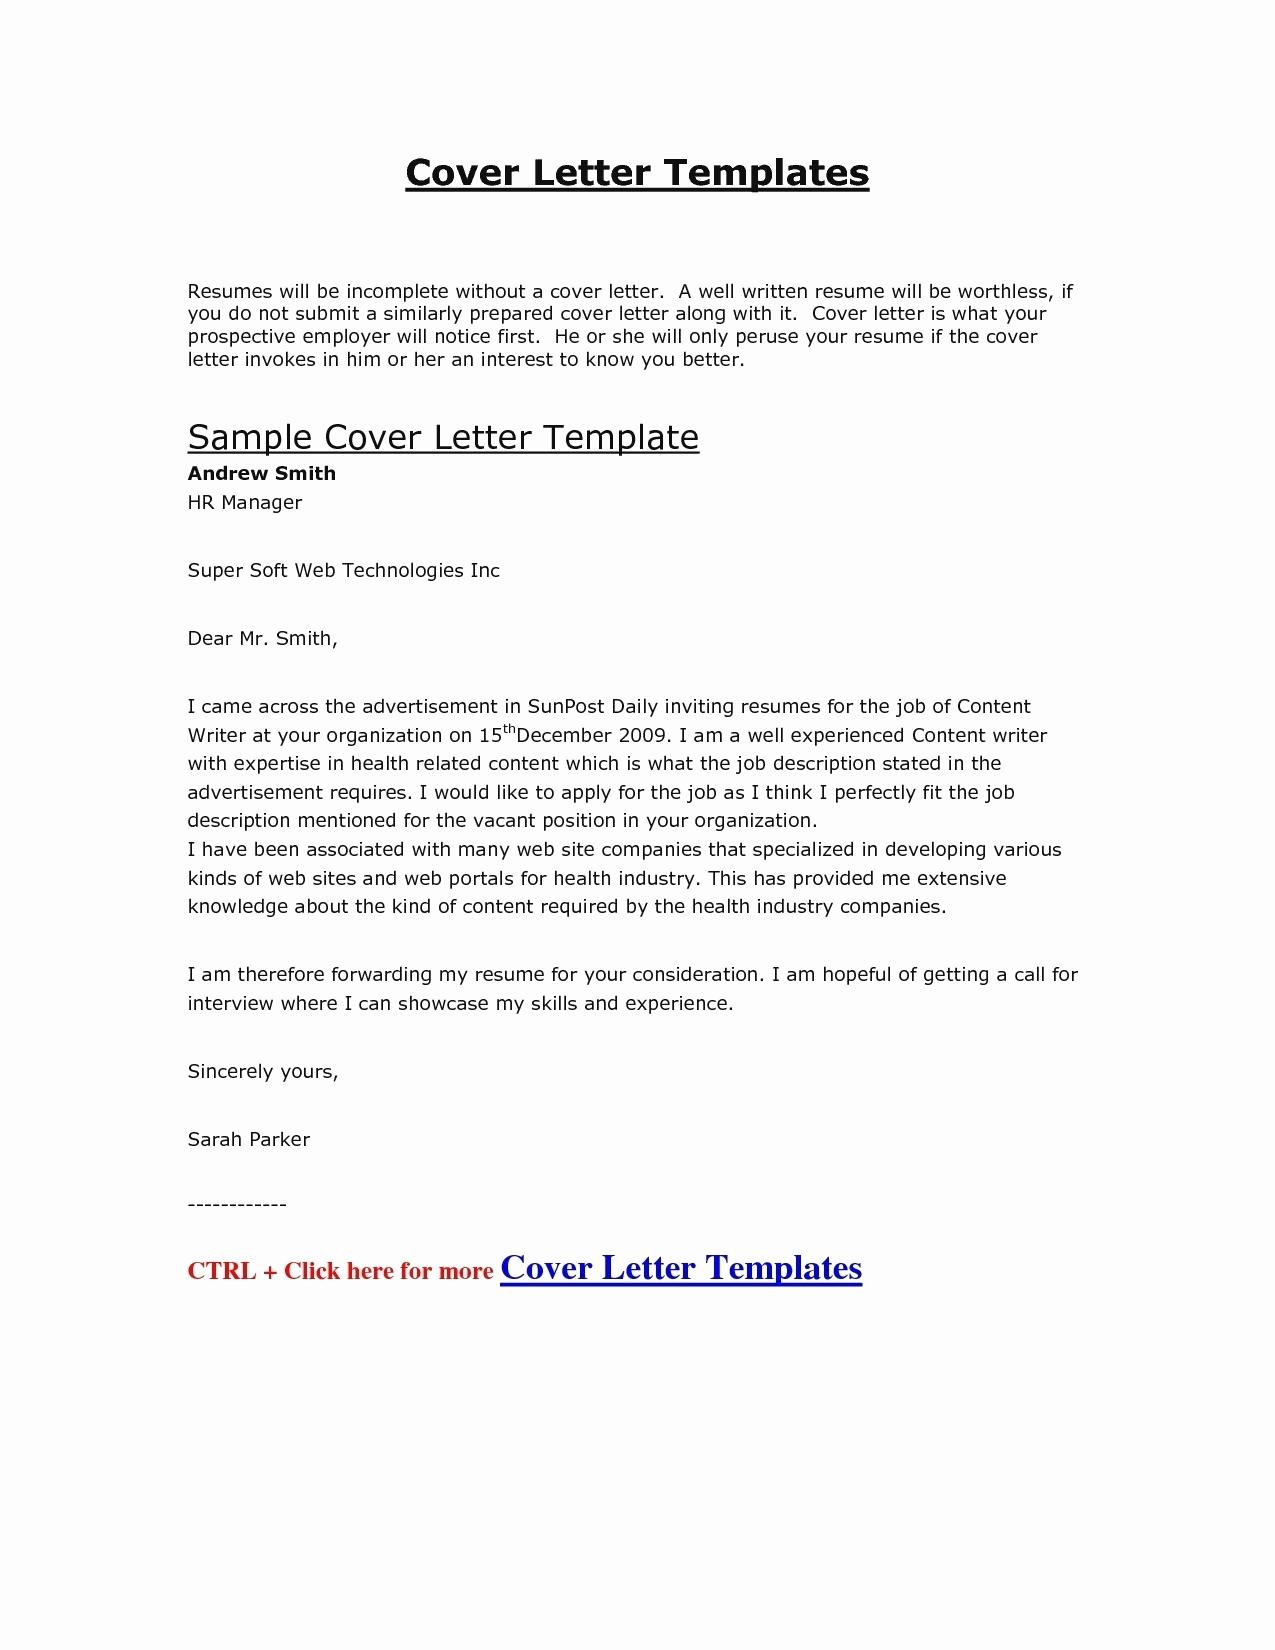 Letter format Template - Resume Templates Poppycockreviews